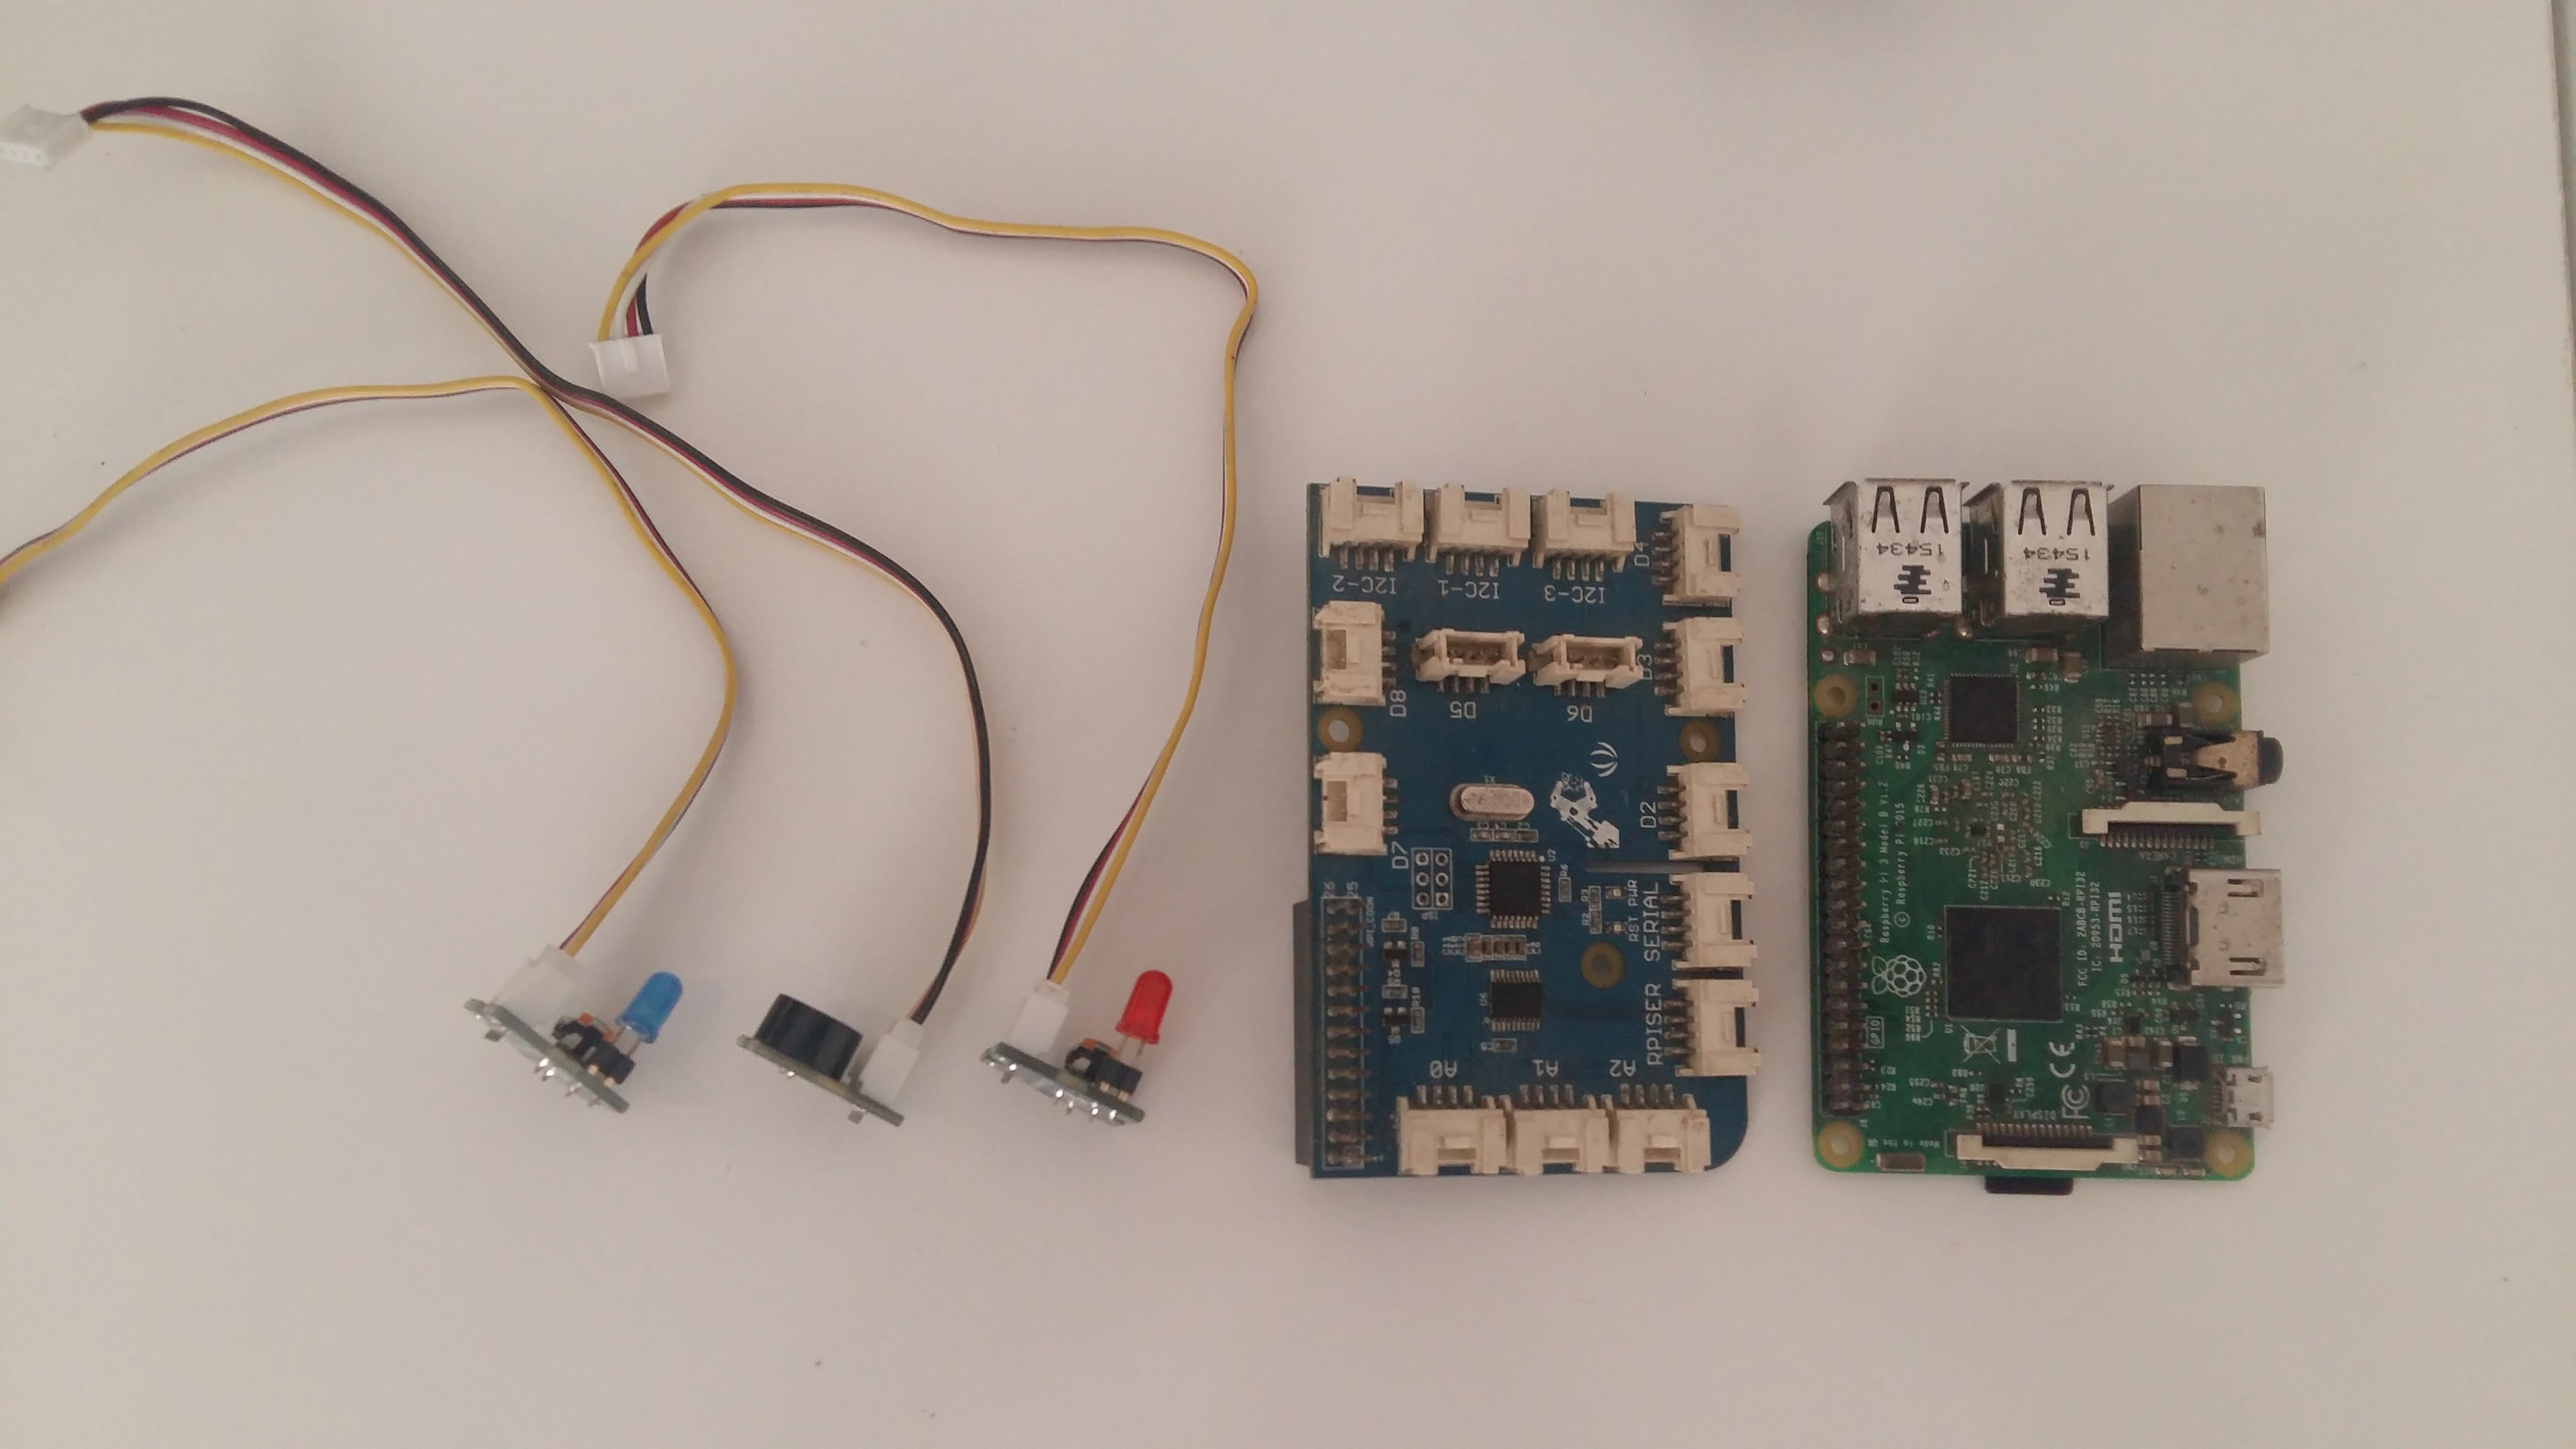 IoT JumpWay Raspberry Pi Dev Kit IoT Alarm